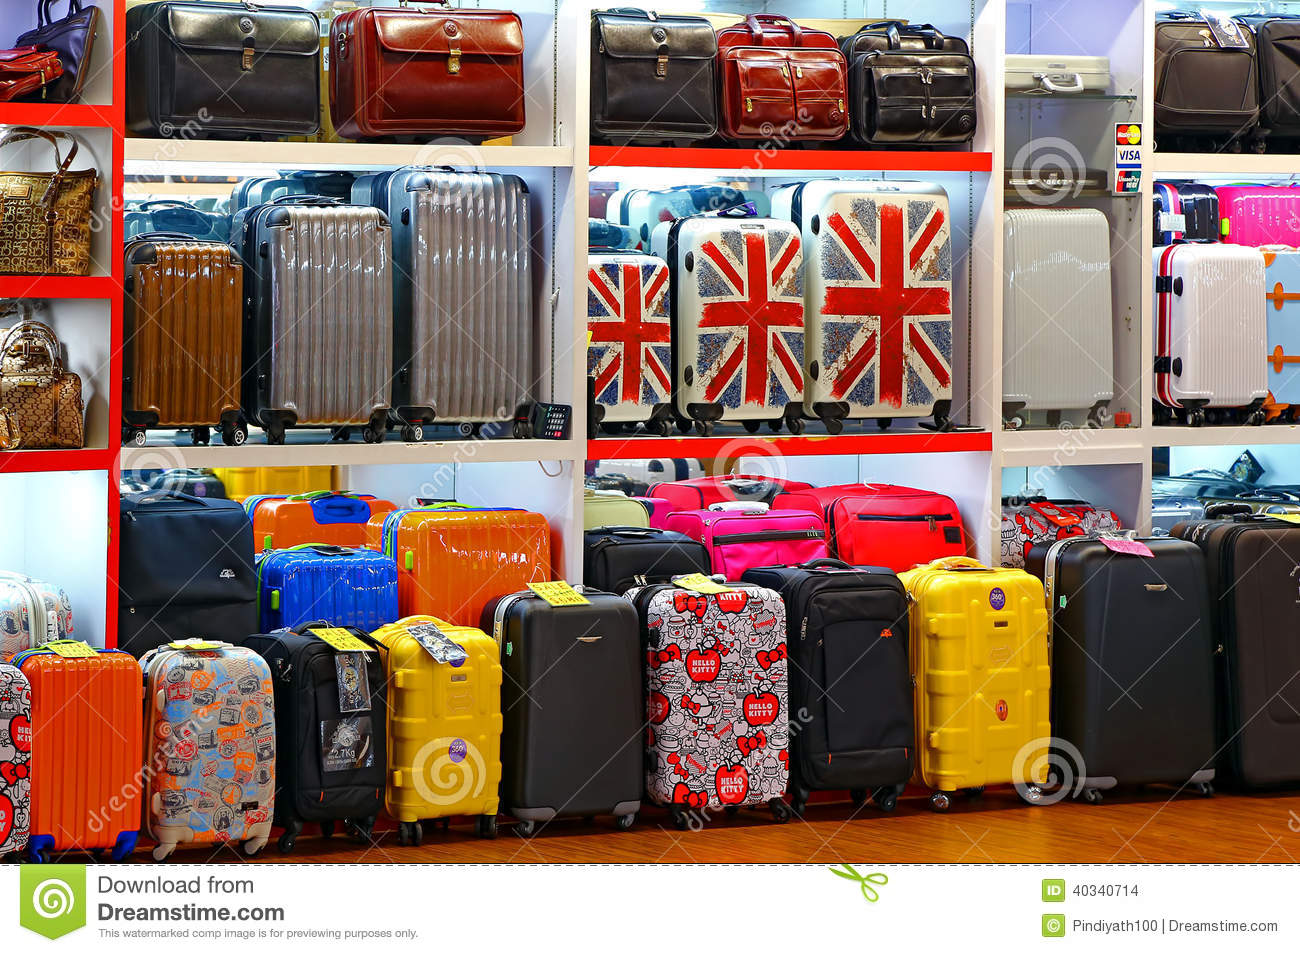 Fashion Bags Luggage Store Royalty Free Stock Photos - Image: 32563798